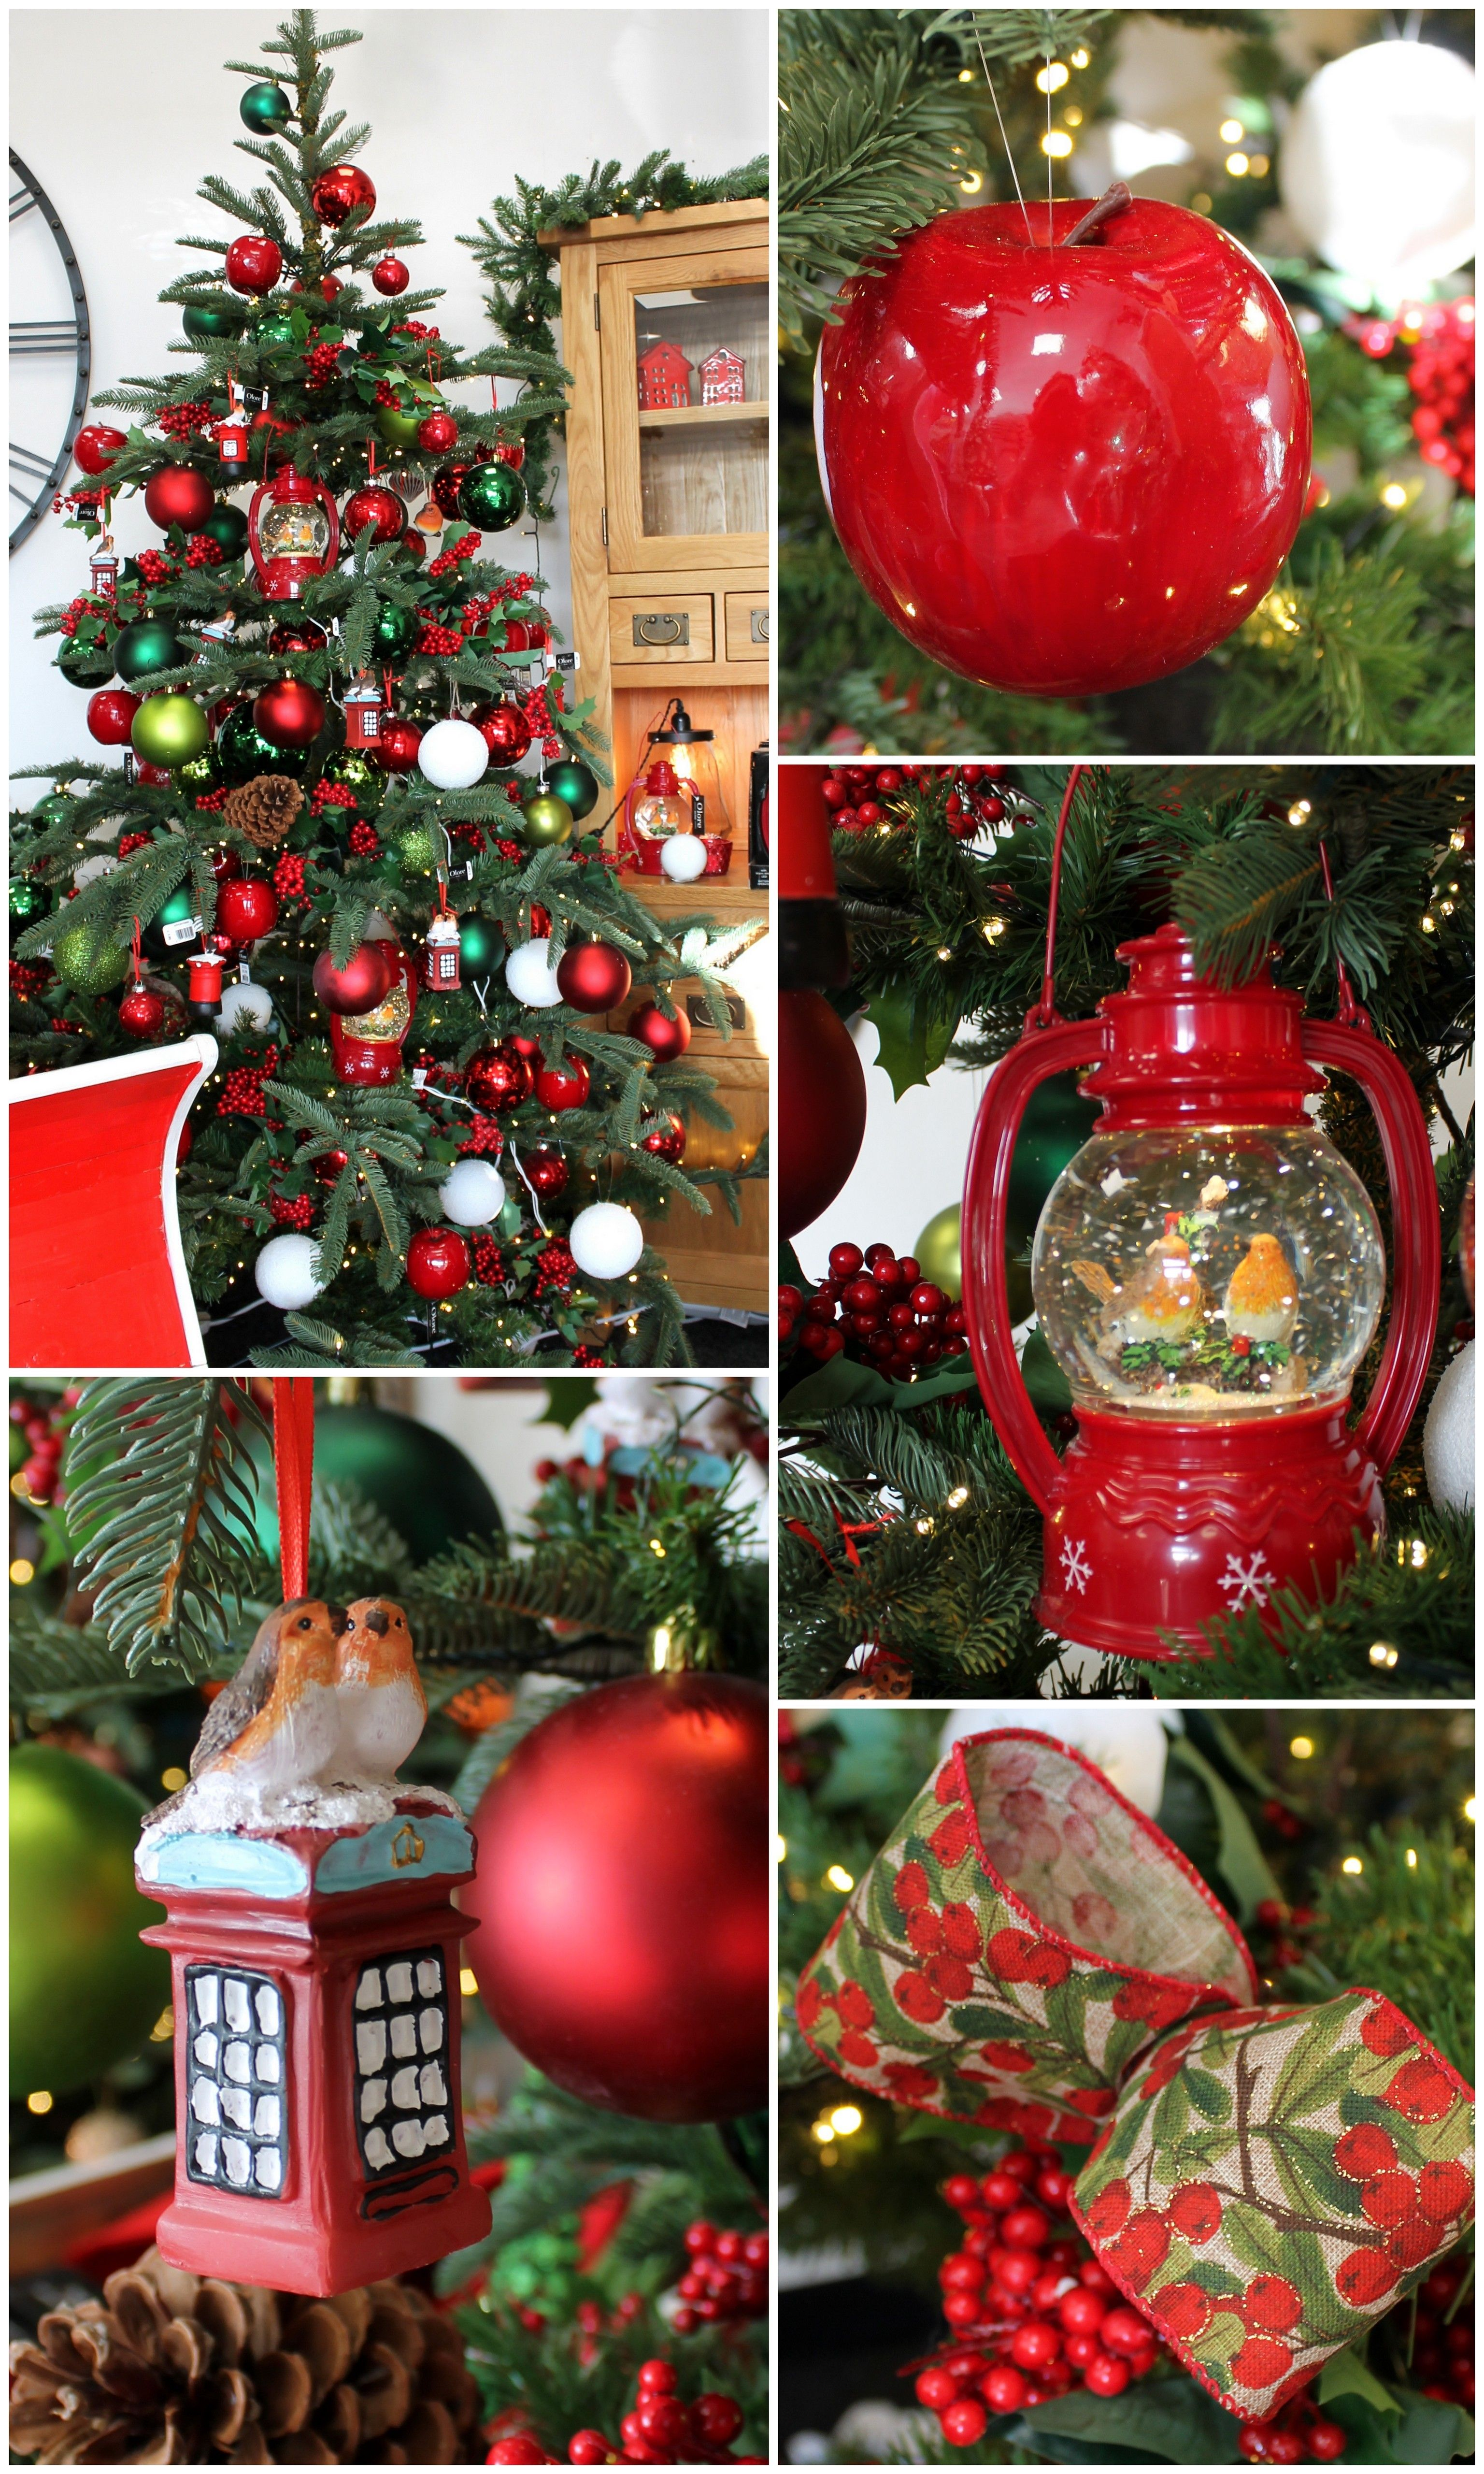 Traditional Christmas Tree With Red & Green Decorations, Berries And